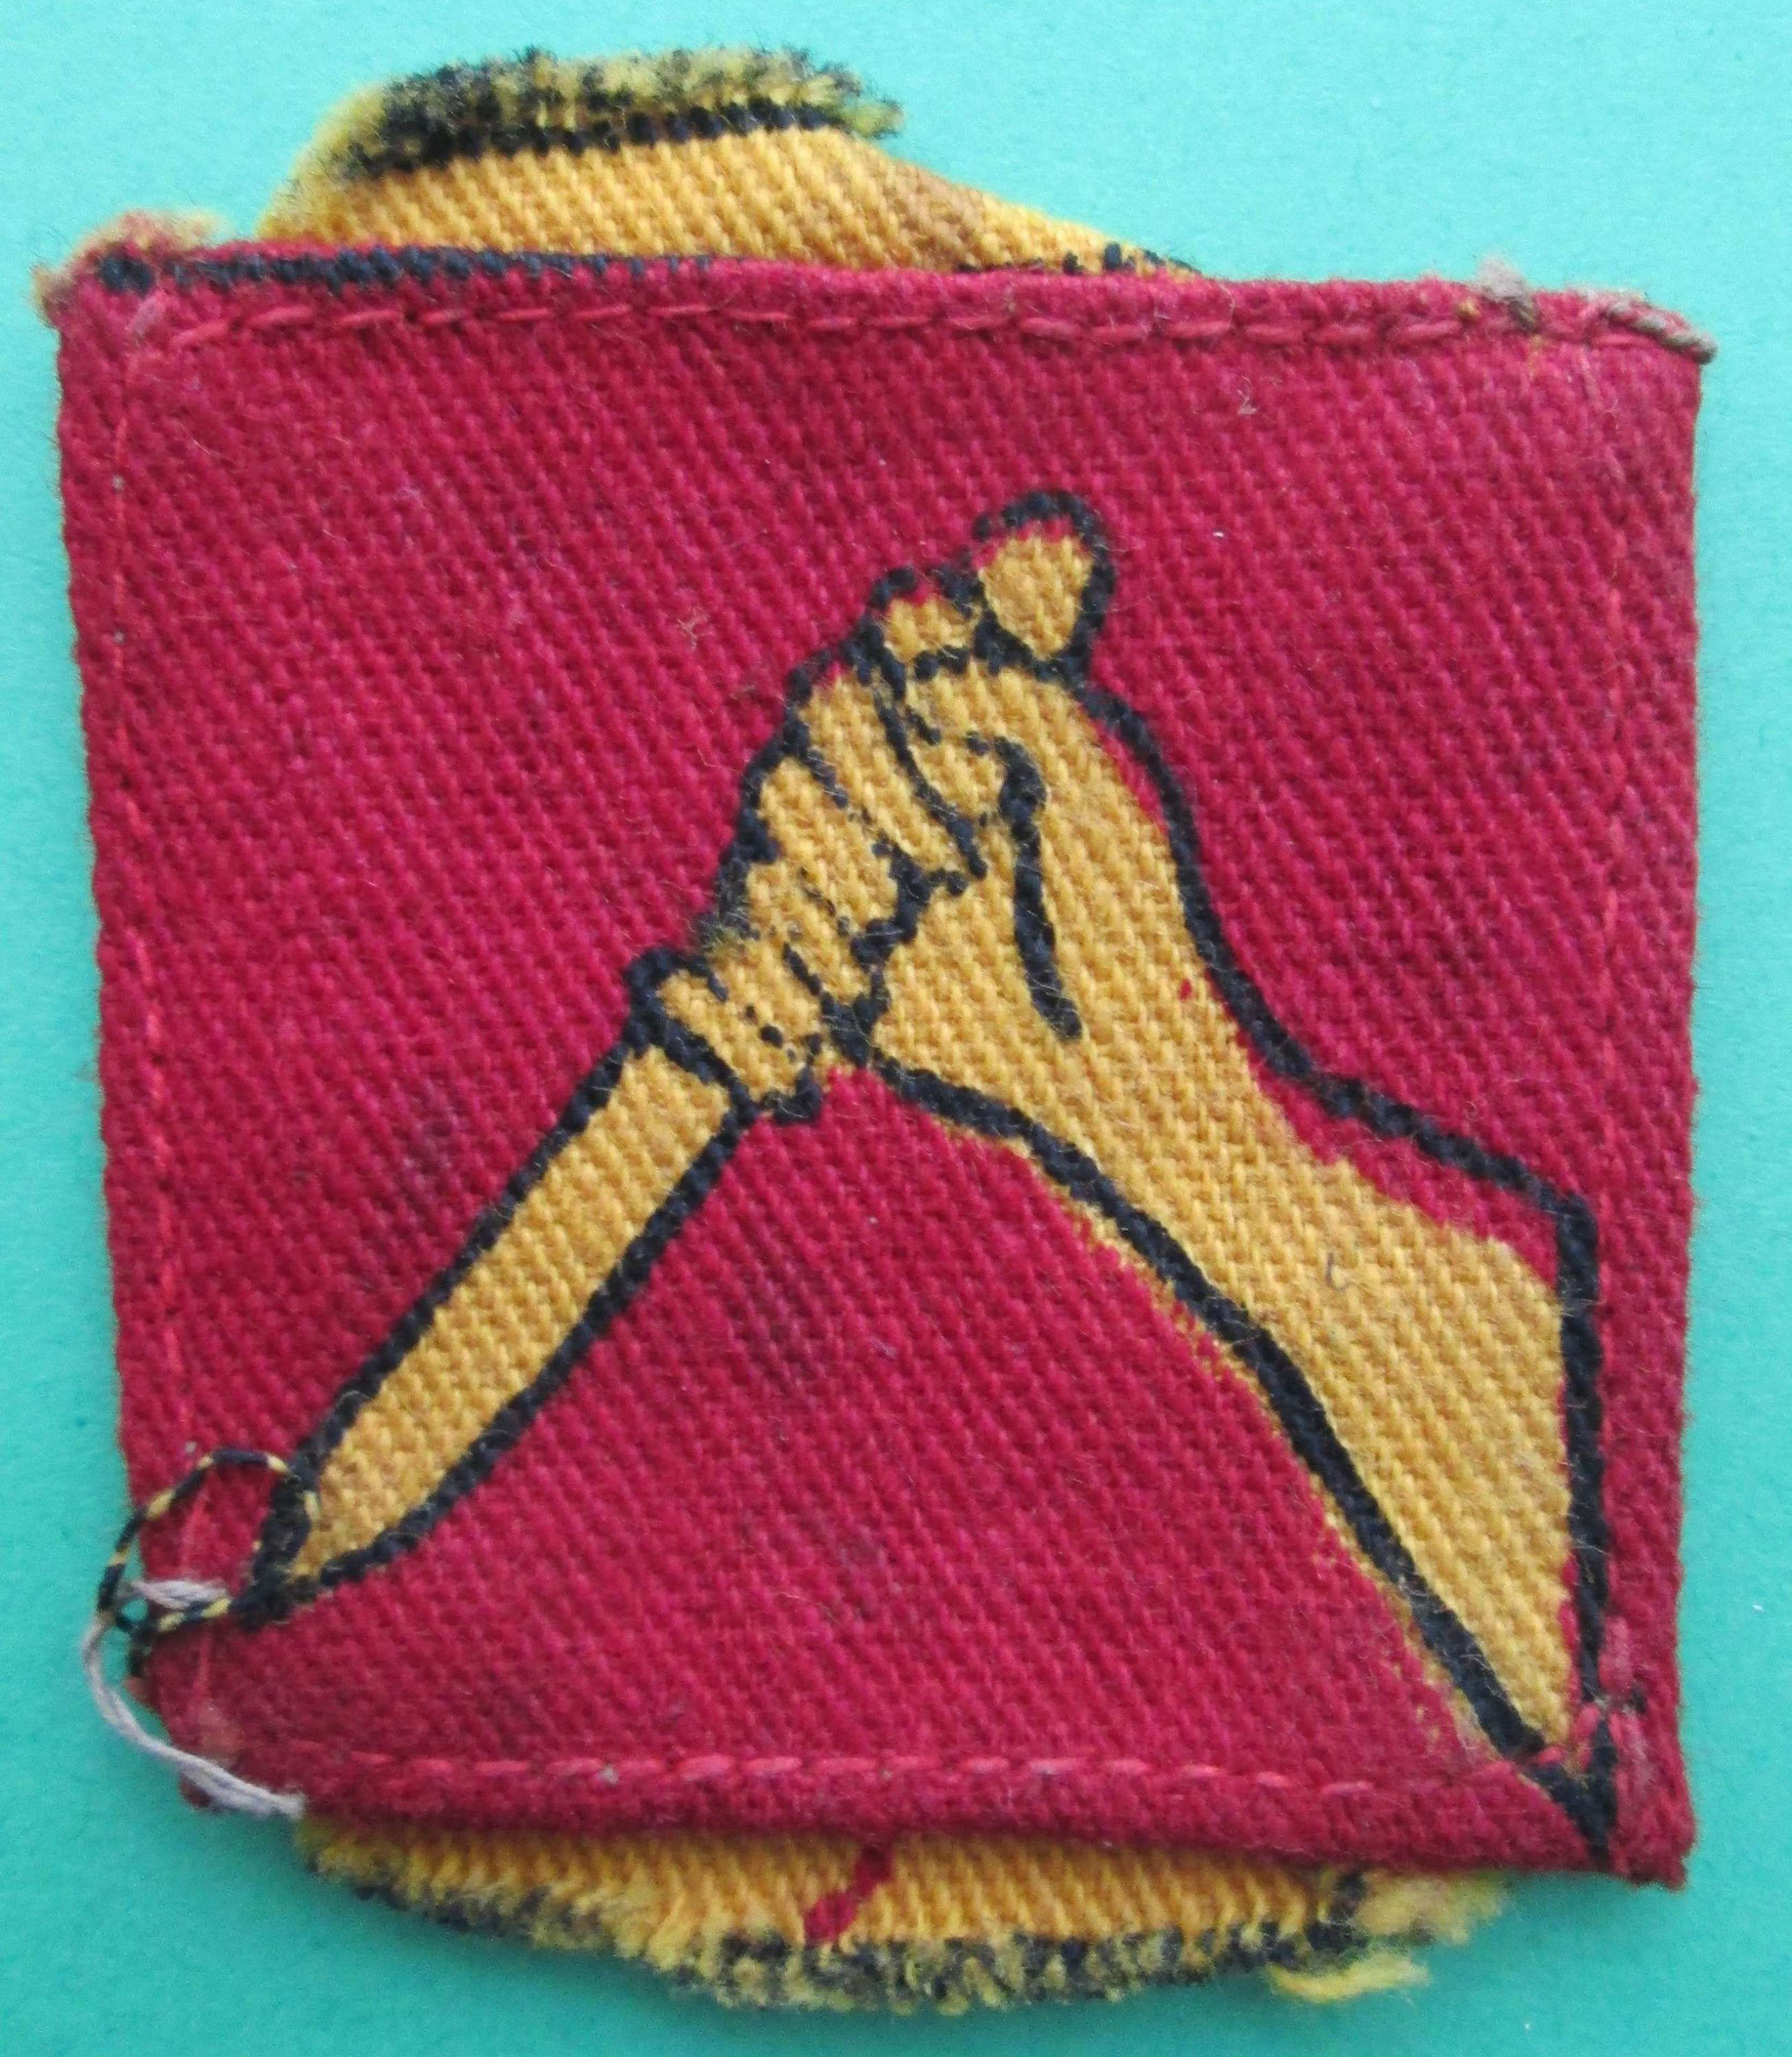 A WWII 19TH INDIAN DIVISION SIGN